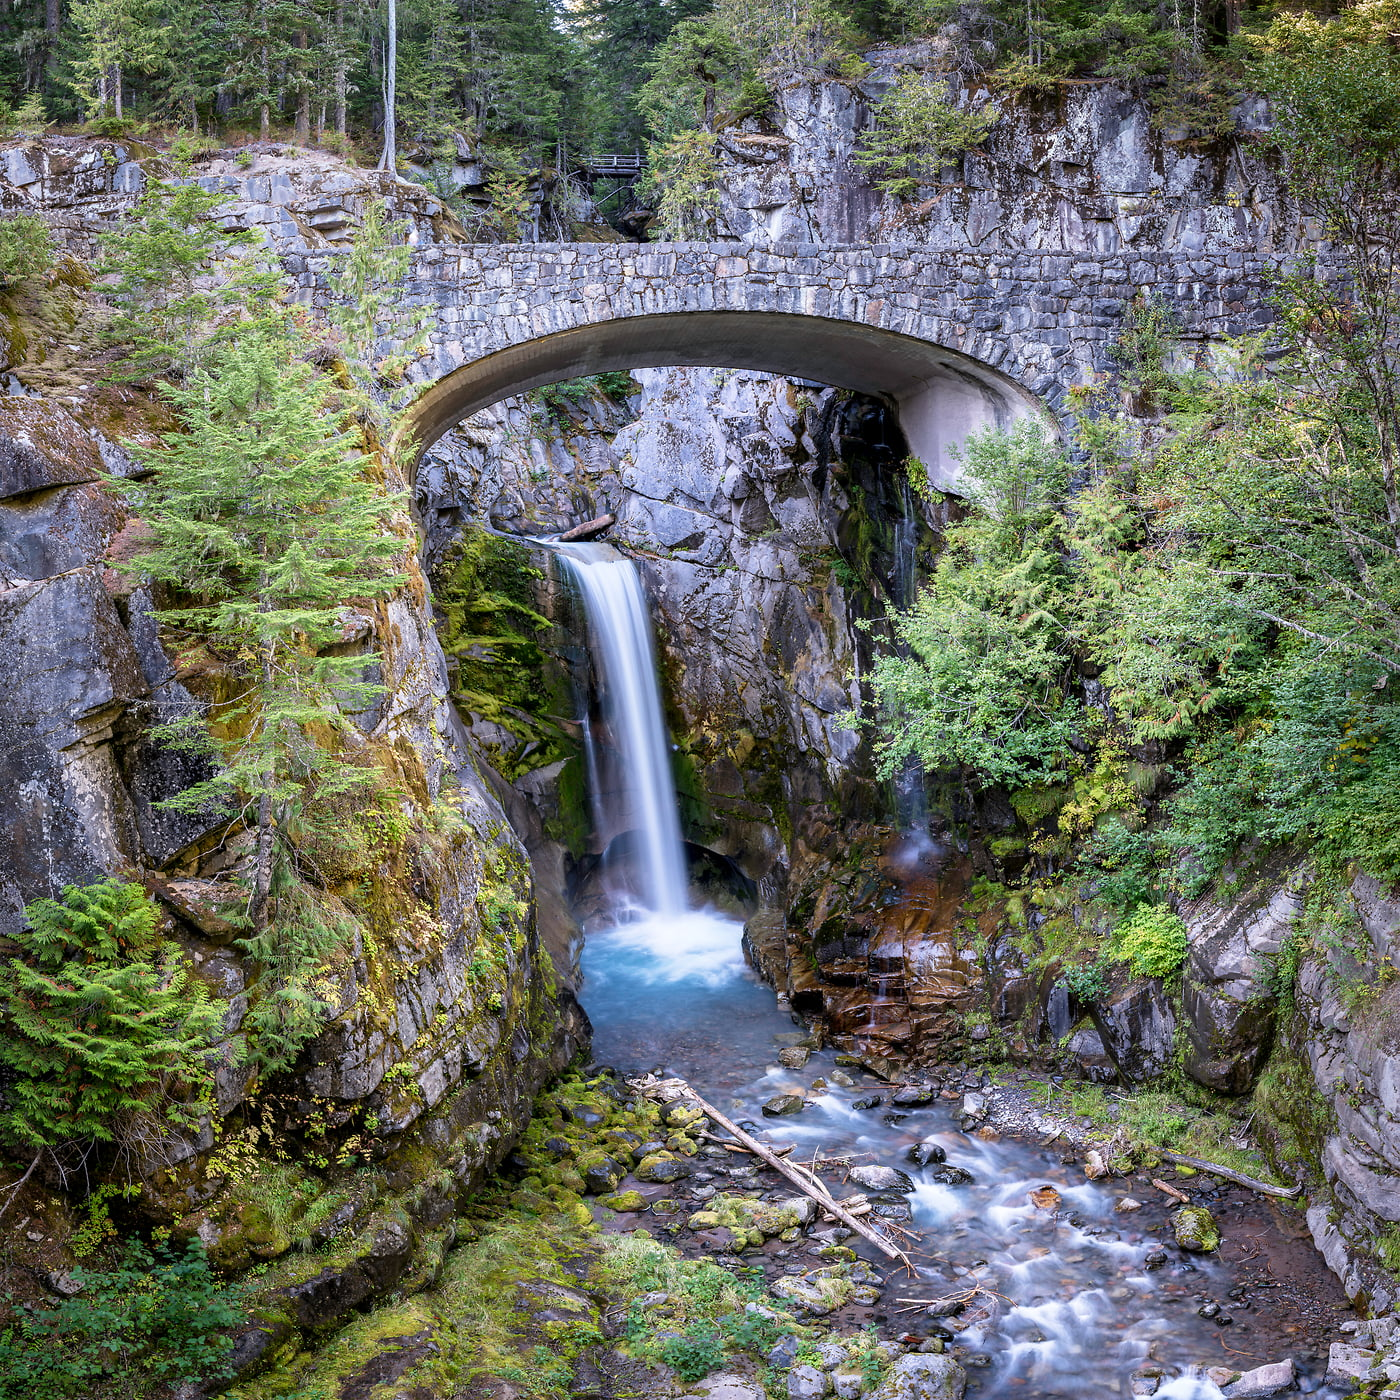 355 megapixels! A very high resolution, large-format VAST photo print of a nature scene with a bridge and waterfall in the Pacific Northwest; fine art photo created by Justin Katz at Christine Falls on Mount Rainier in Washington